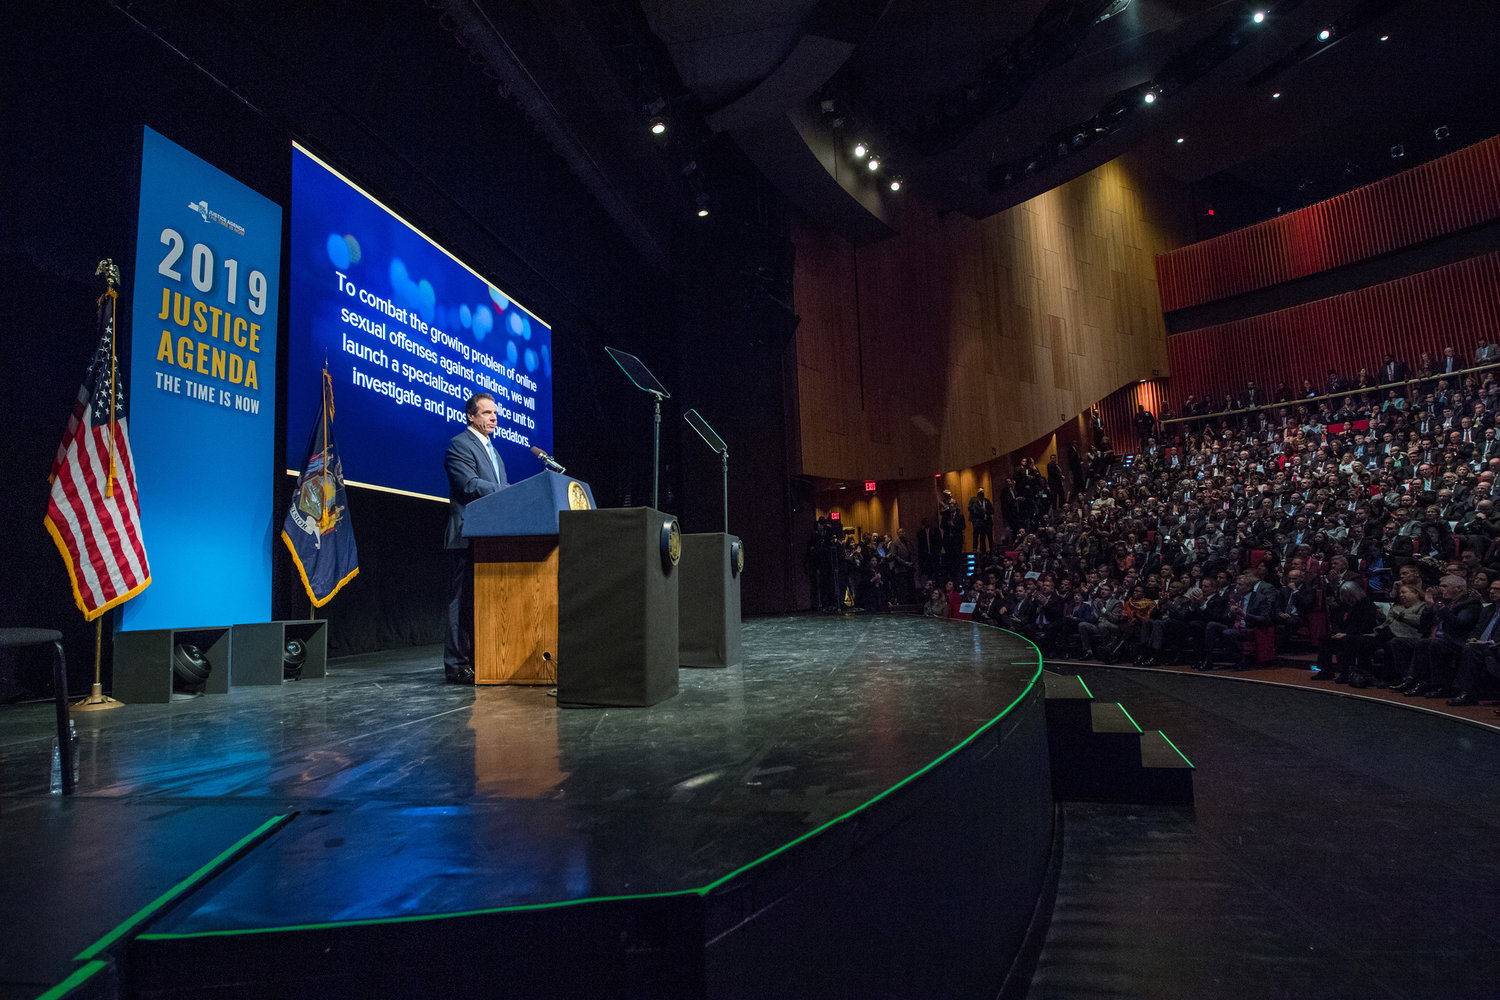 Gov. Andrew Cuomo delivered his ninth State of the State address last week in Albany. Cuomo's priorities and fiscal year 2020 budget could spell both good and bad news for Nassau County, according to local lawmakers.